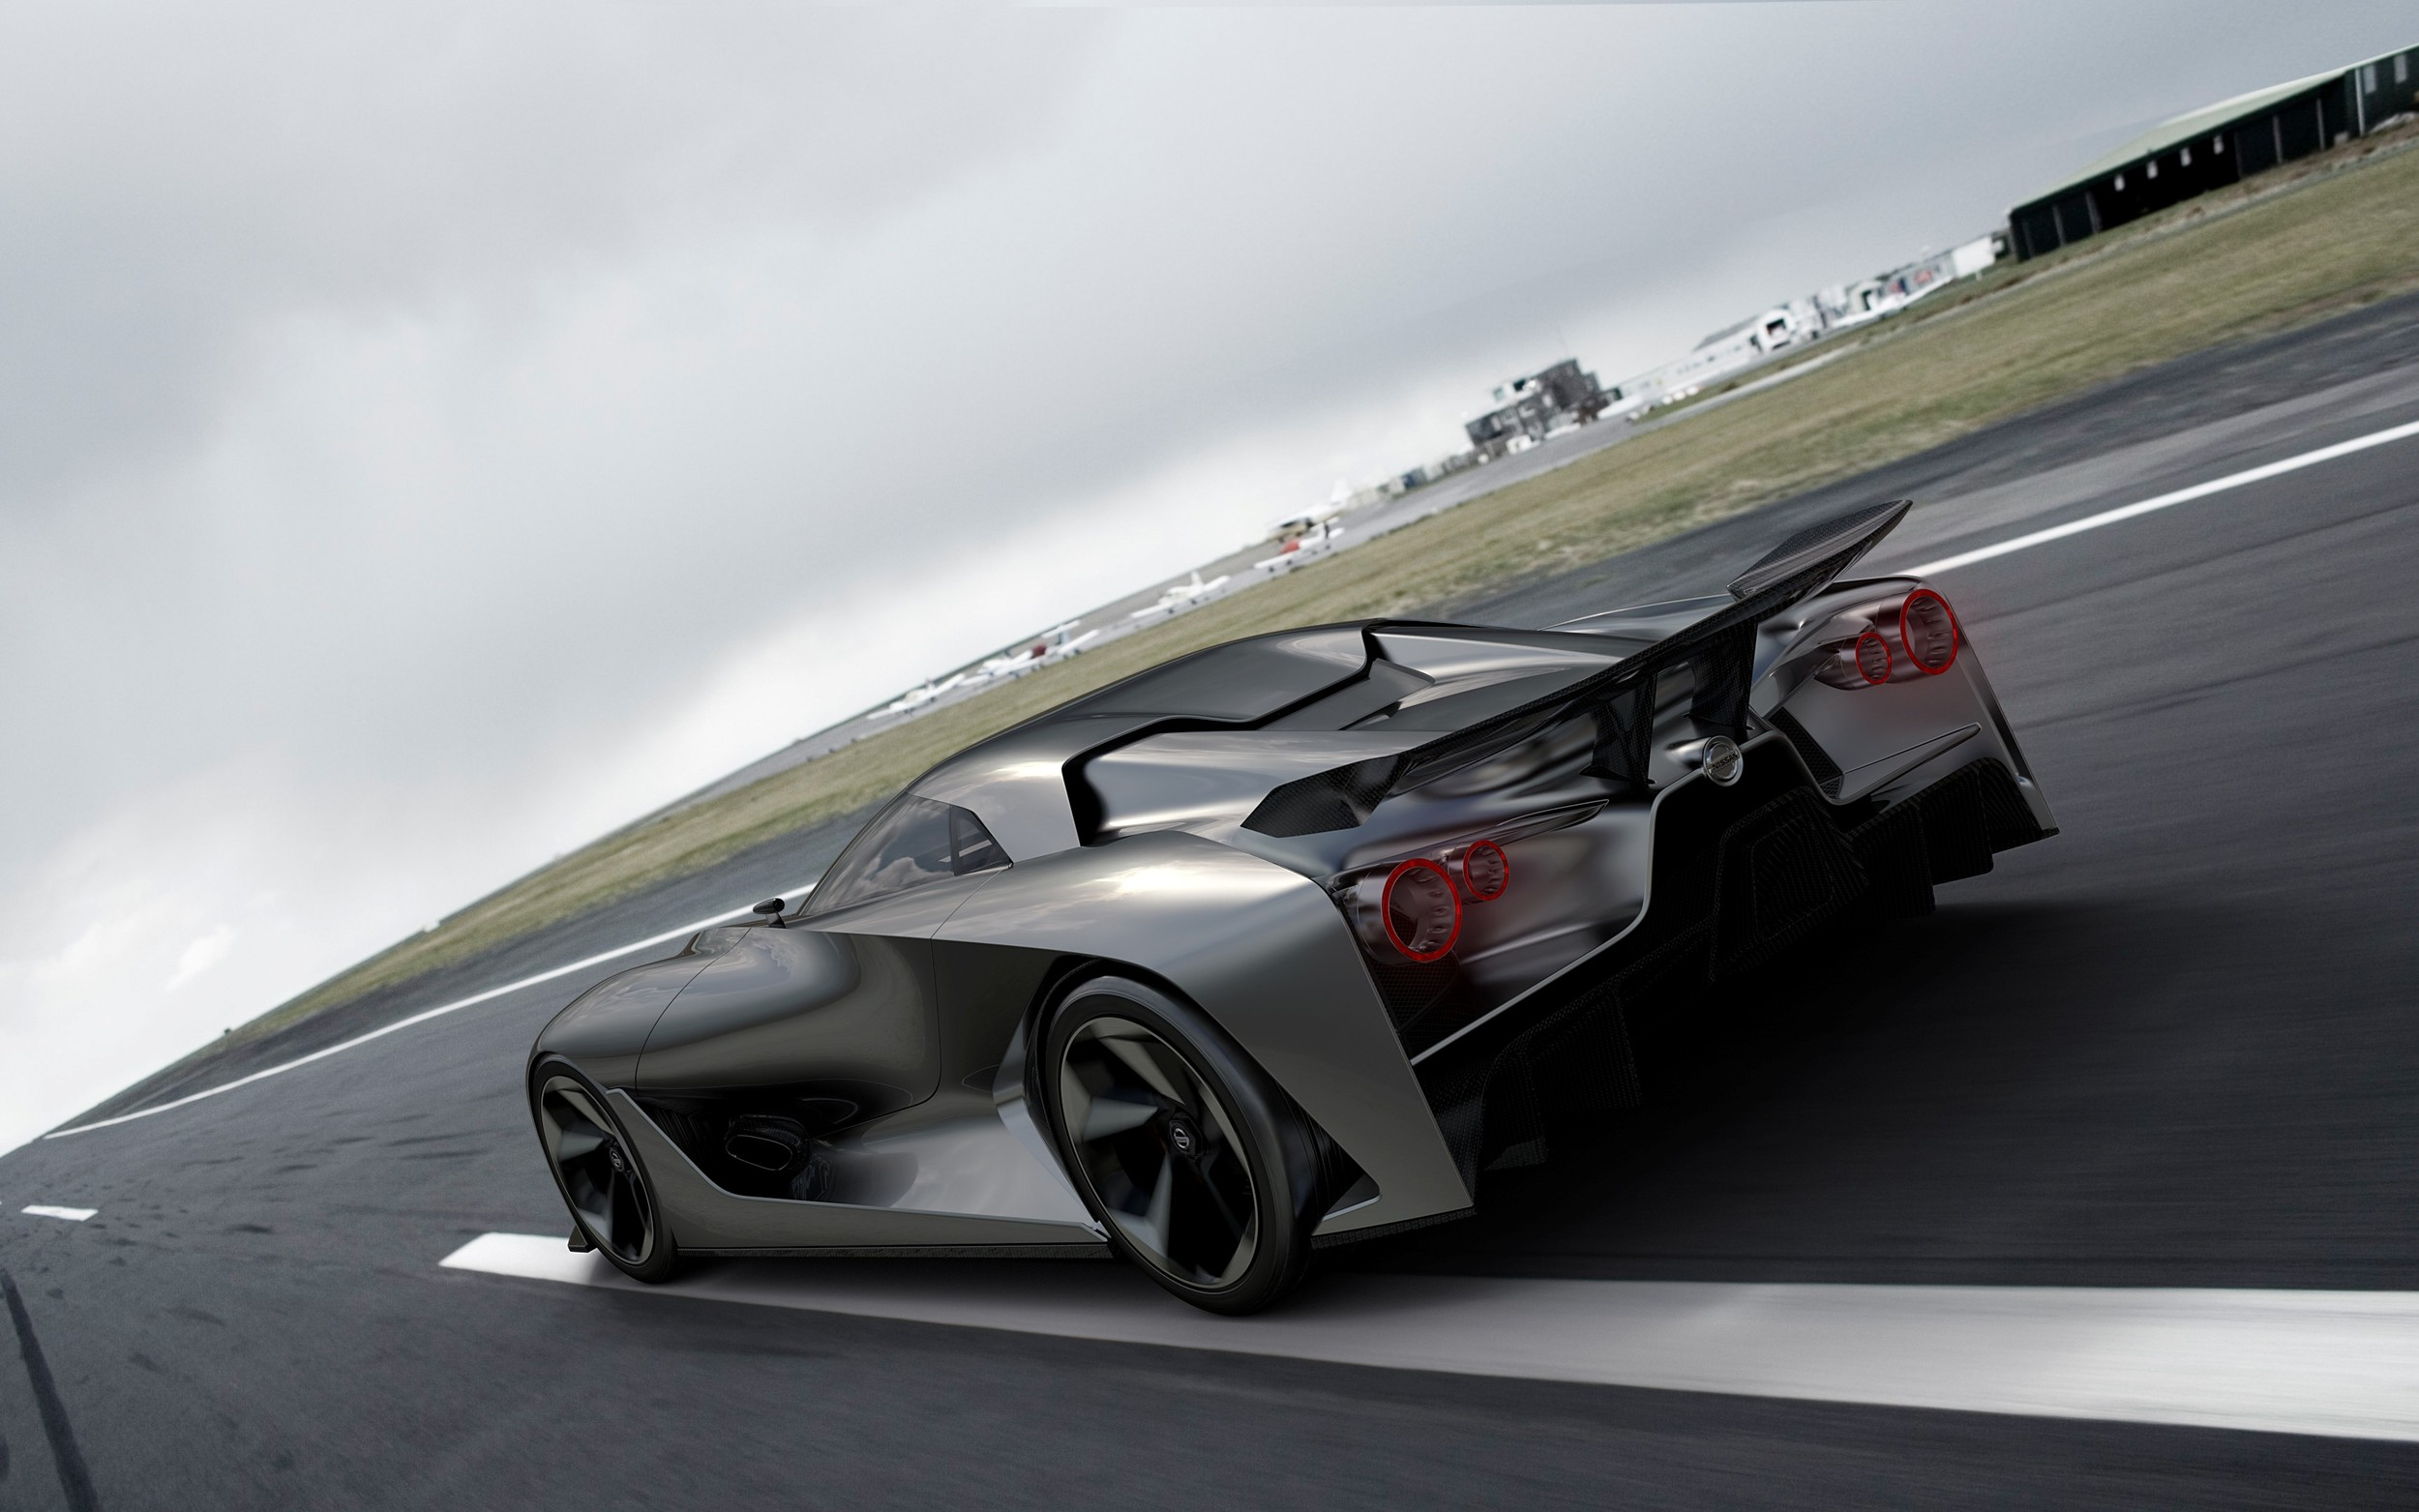 2014_Nissan_Concept_2020_Vision_Gran_Turismo_009_2580.jpg